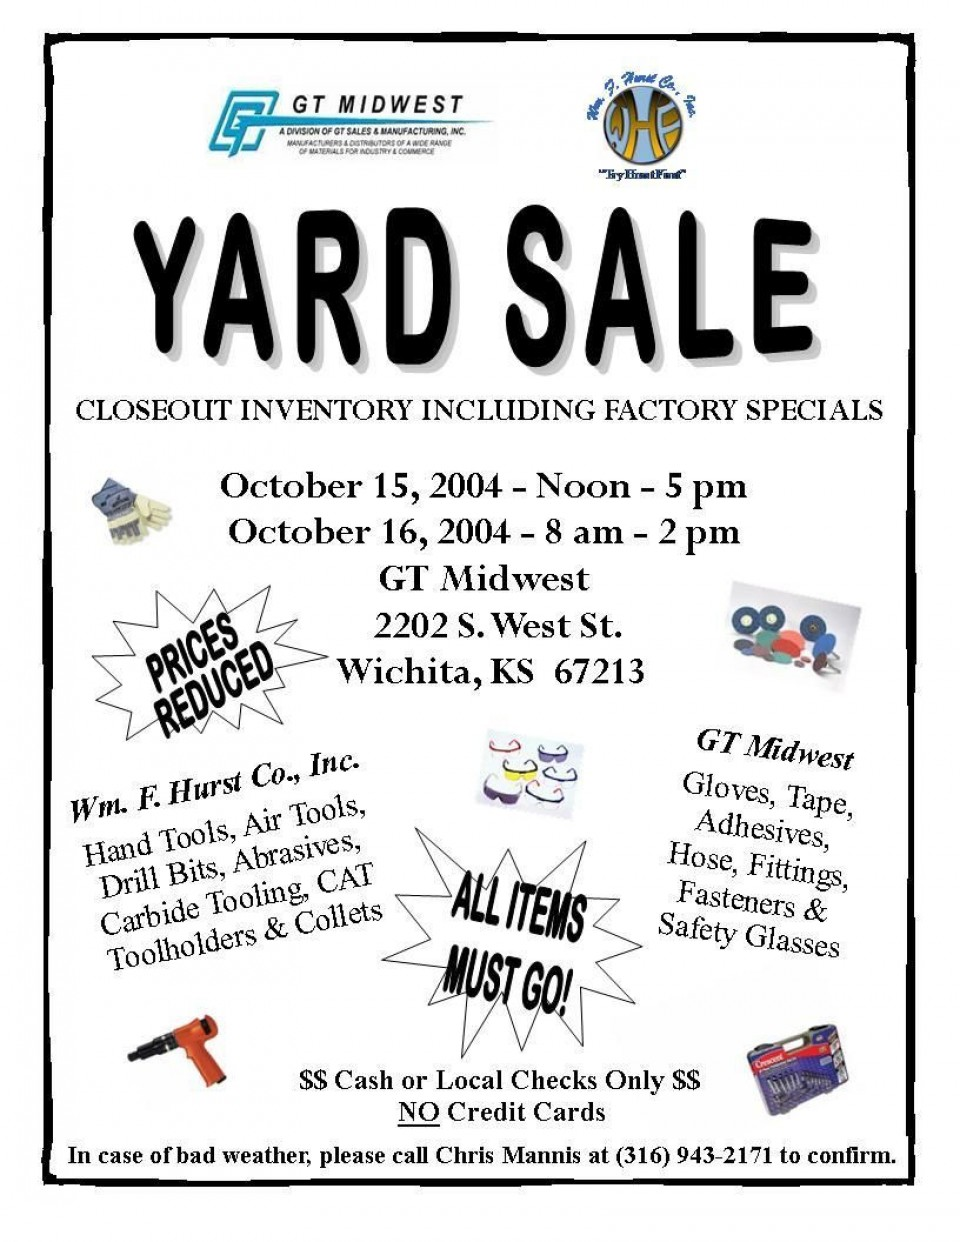 002 Top Yard Sale Flyer Template Sample  Free Garage Microsoft Word960